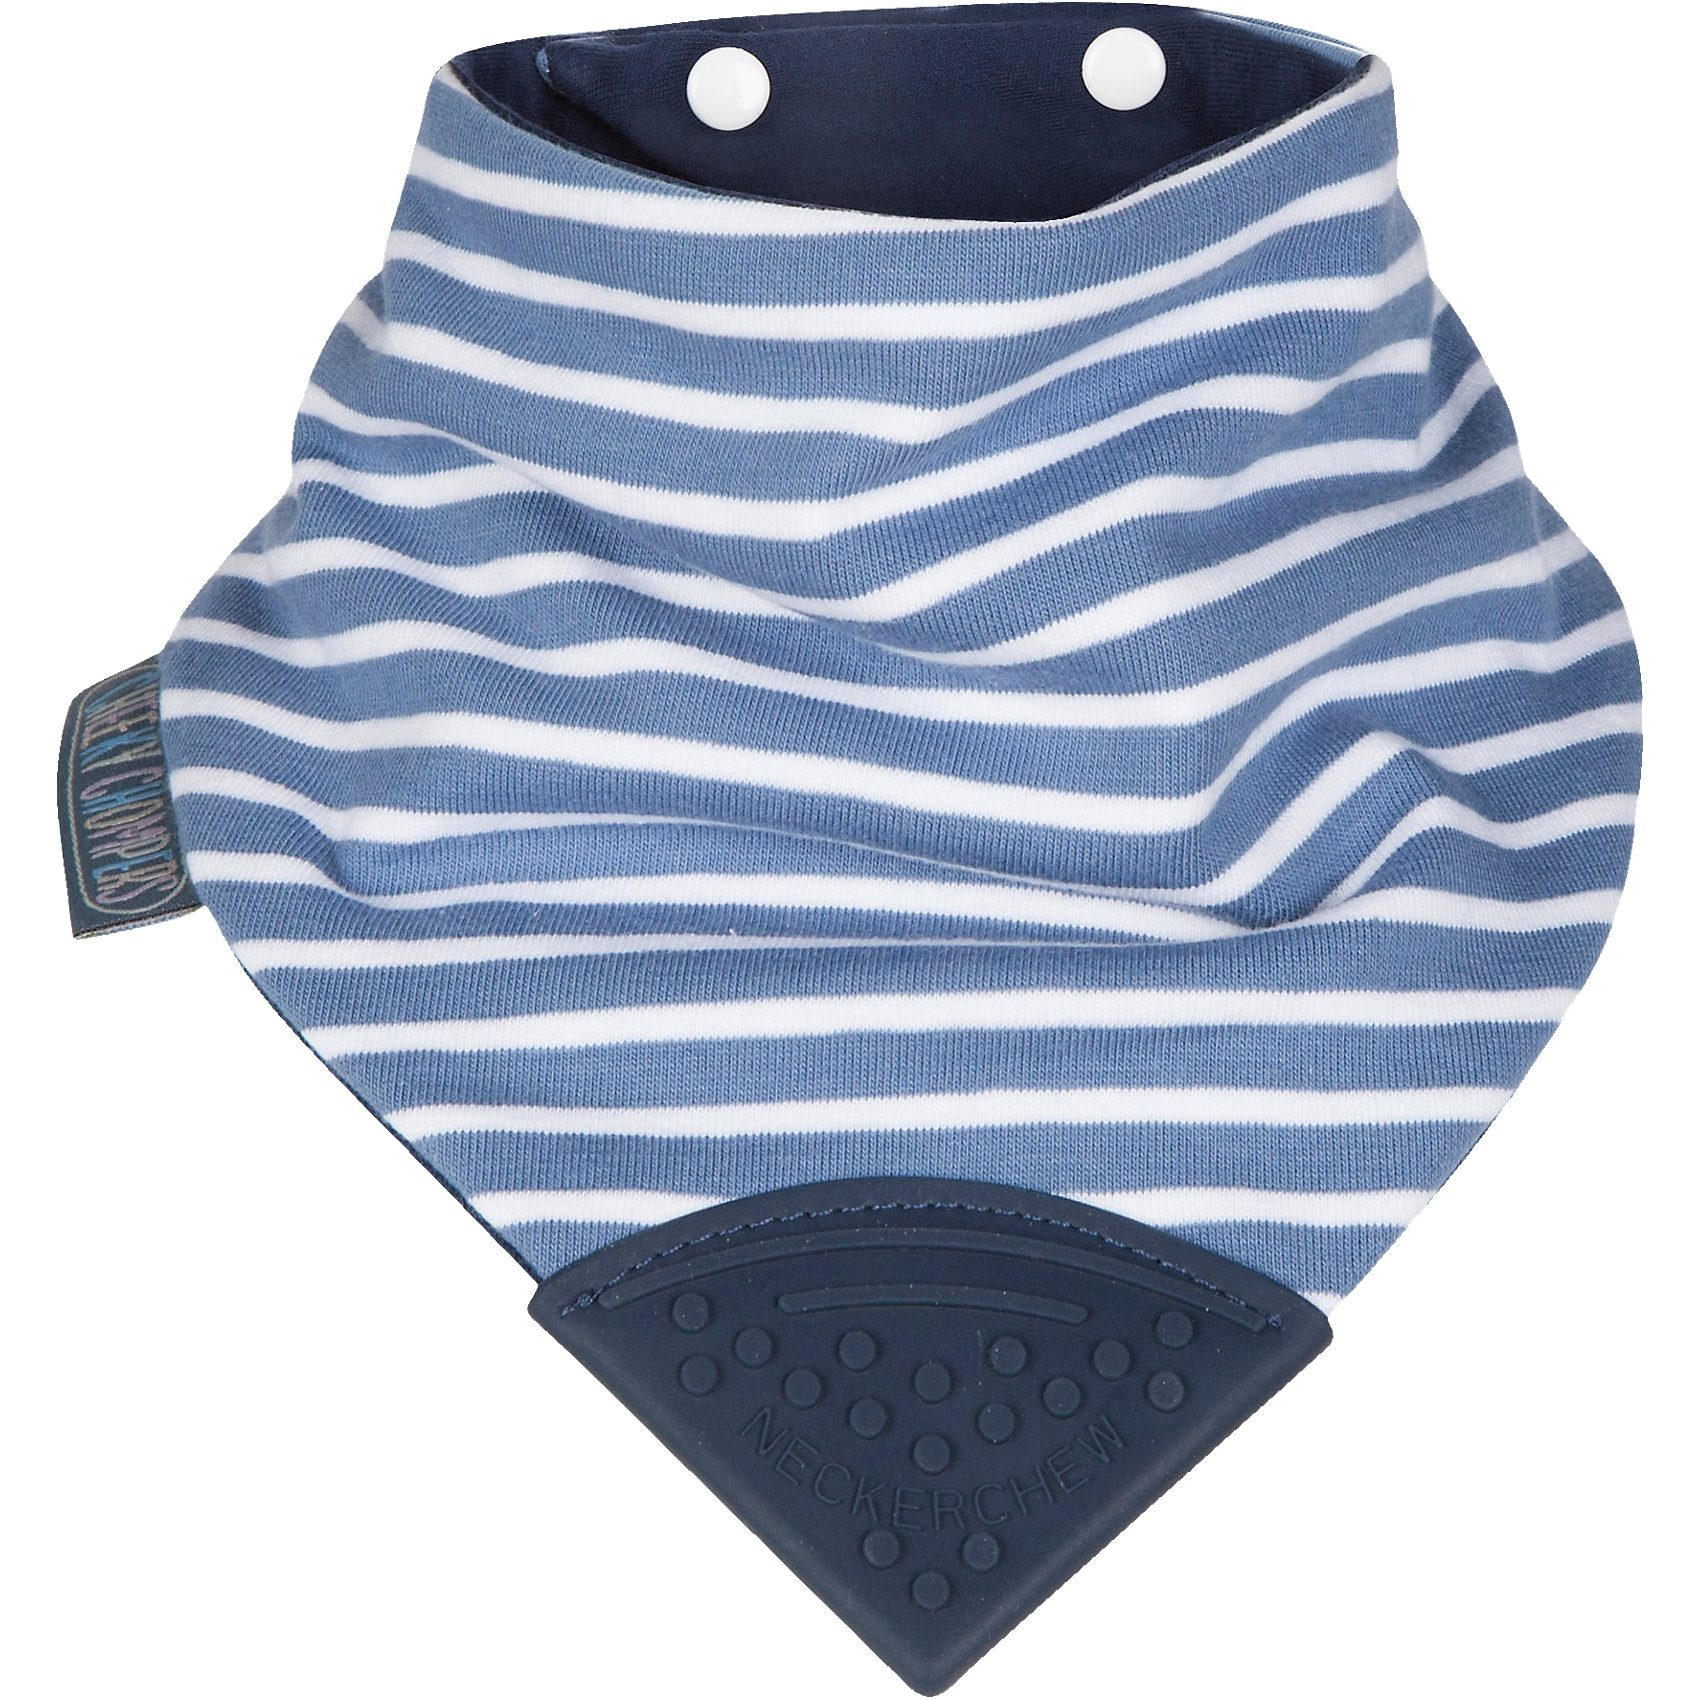 Neckerchew Dreieckstuch mit Beißecke, Preppy Stripes